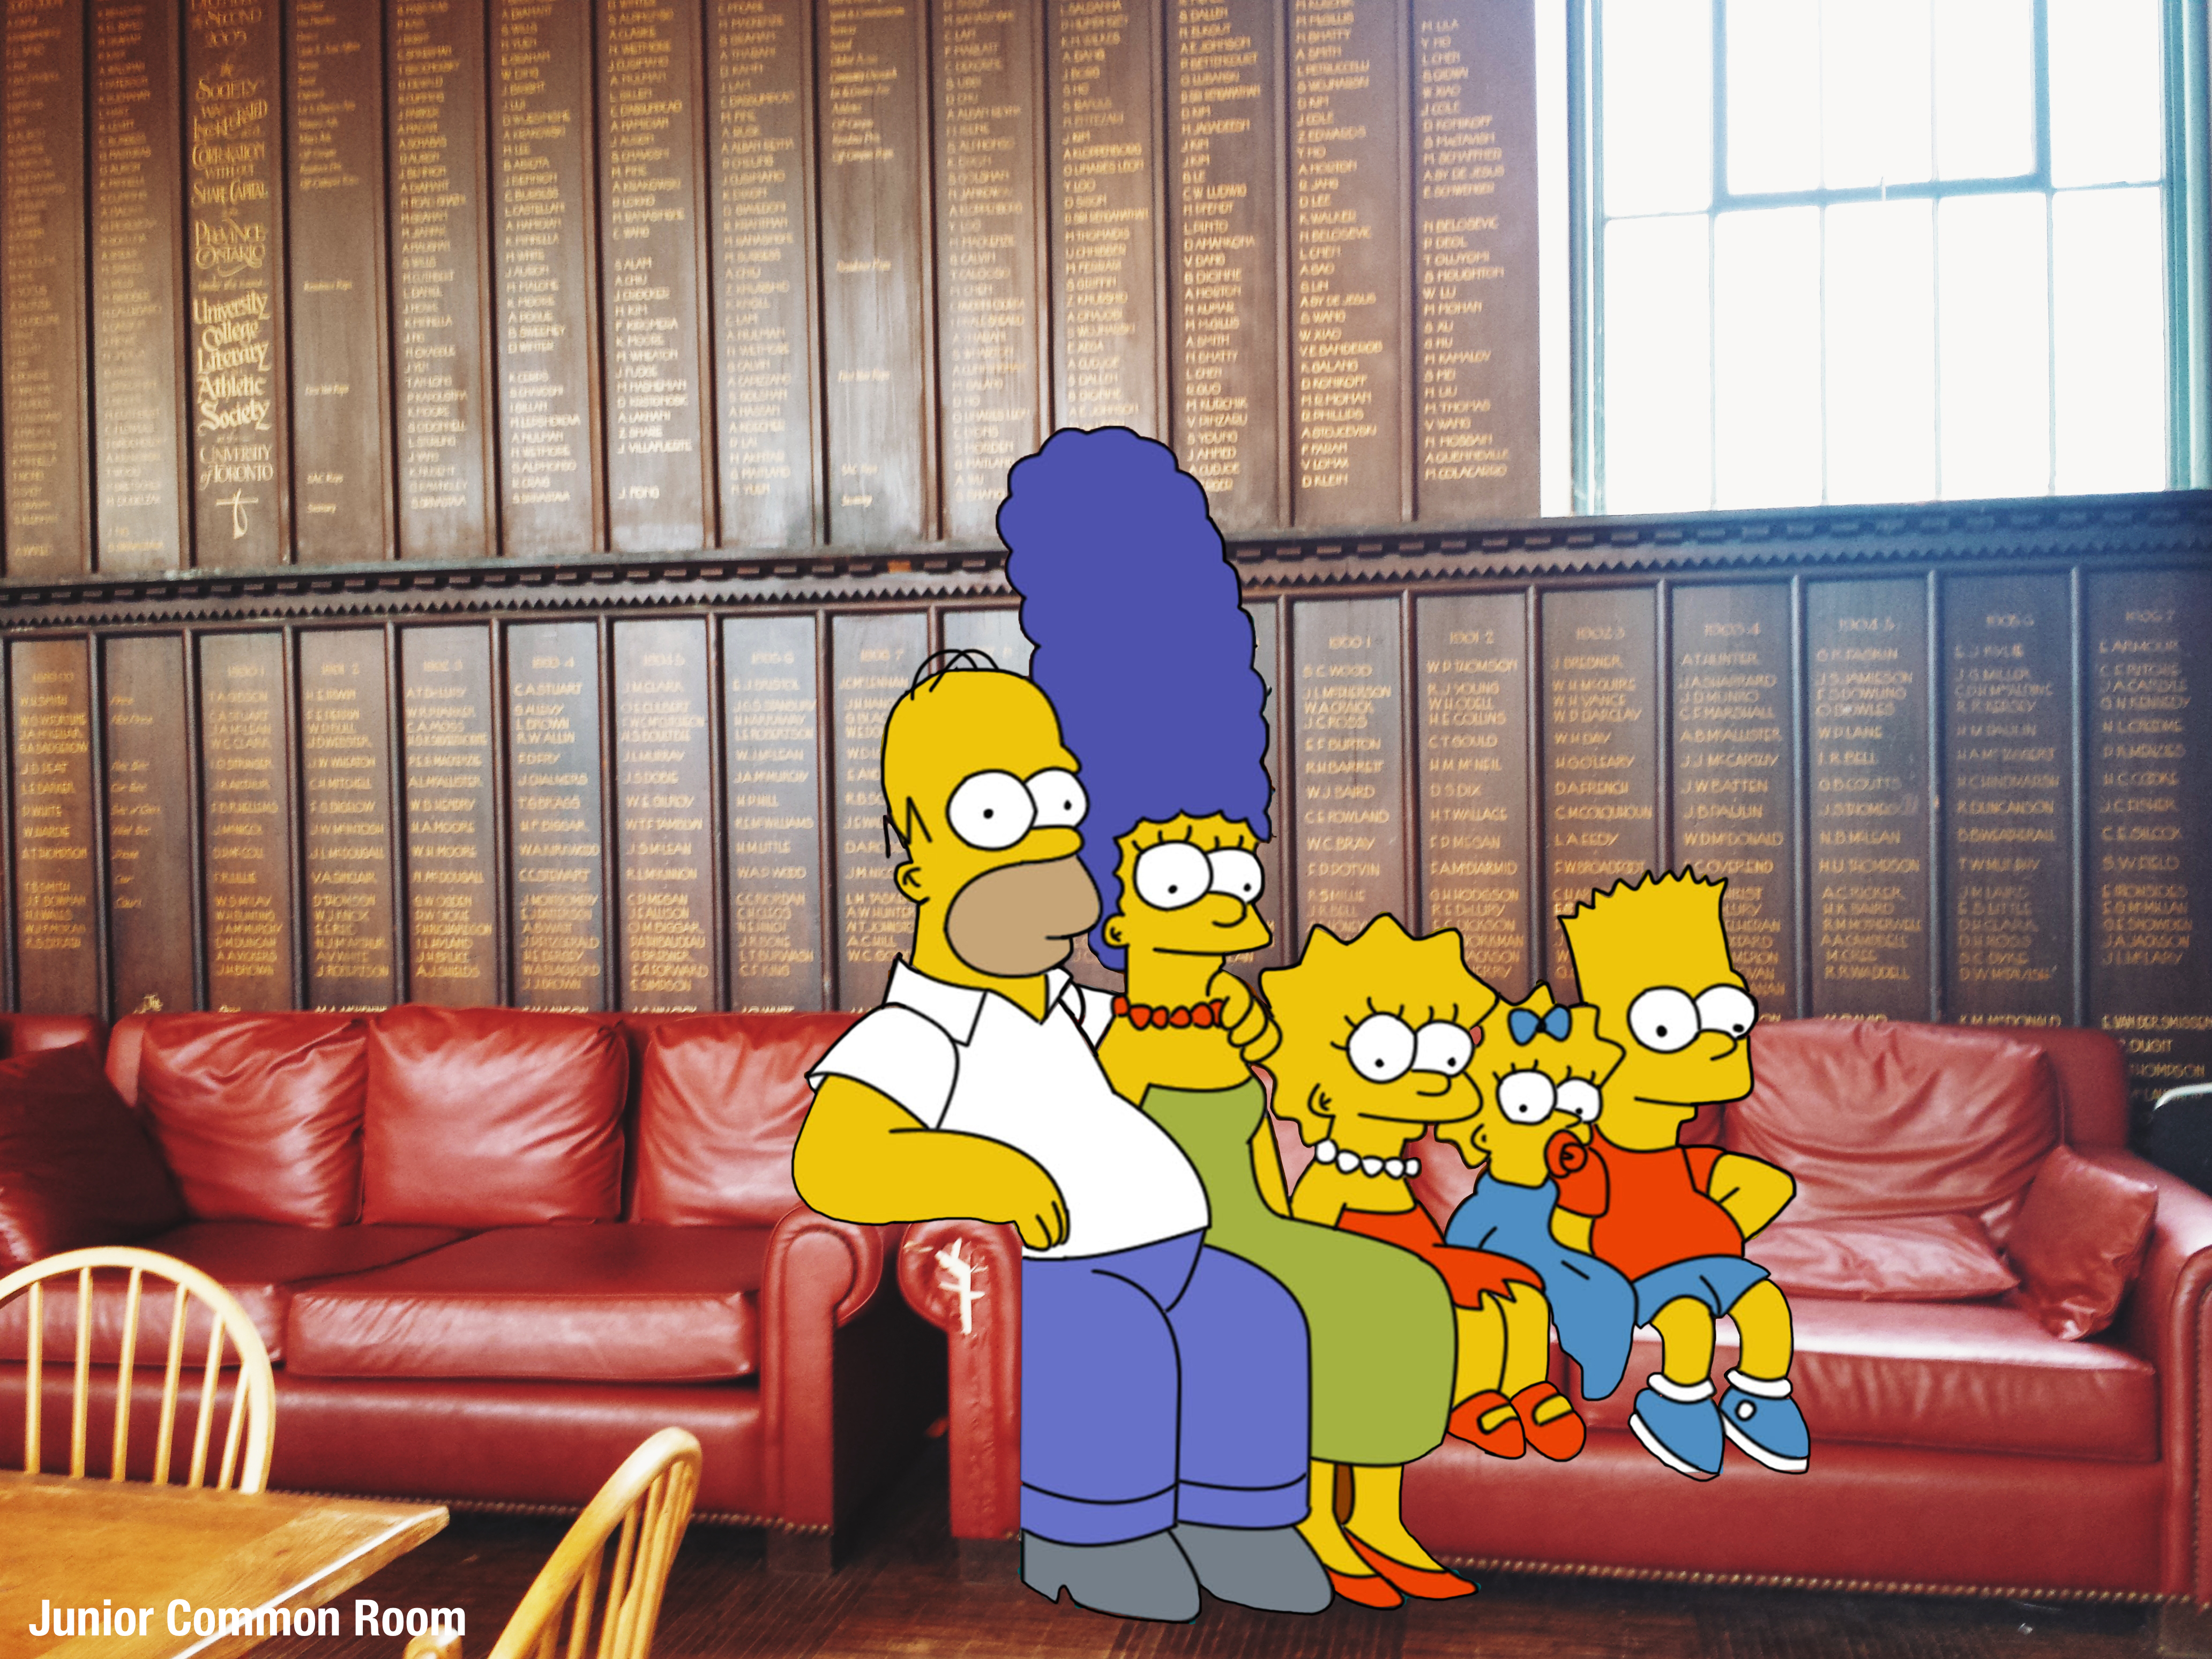 The Simpson Family have left their iconic sofa in favour of the sinfully comfy ones in the JCR.